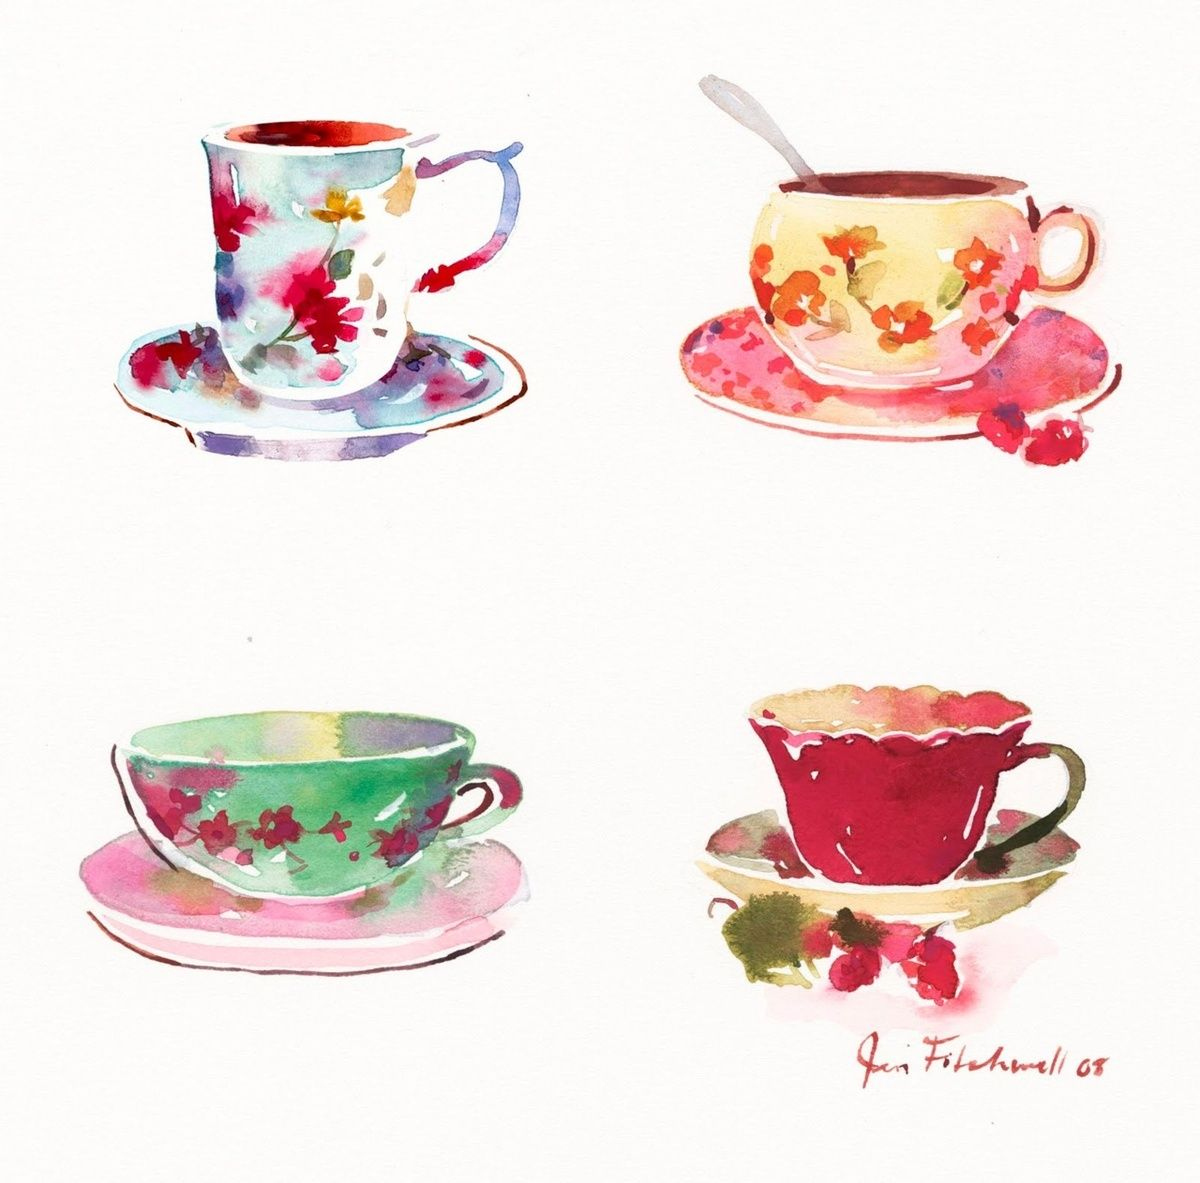 Images For > Teacup Tumblr | Tea art, Watercolor teacup ...